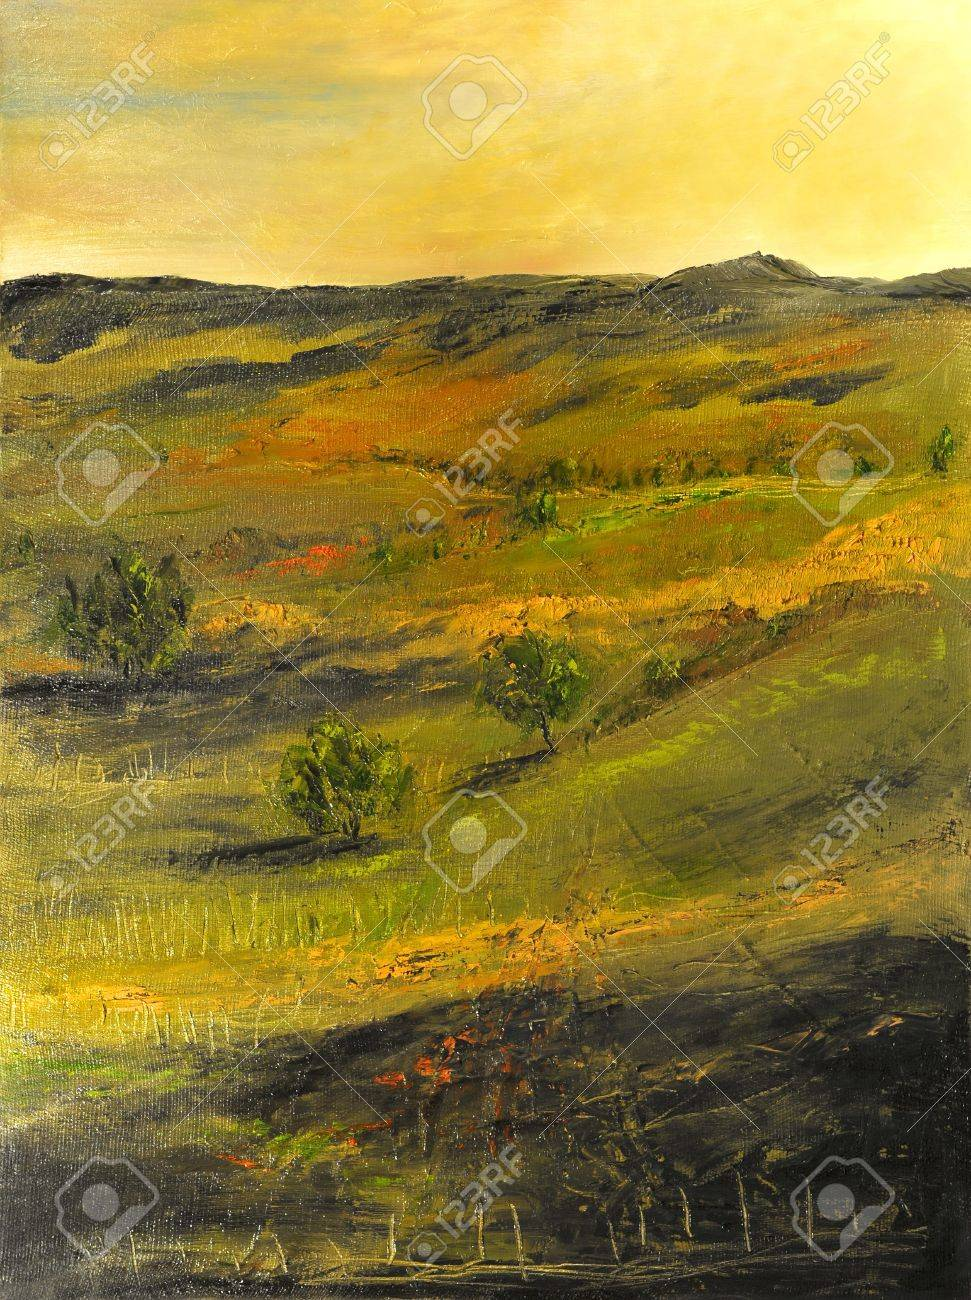 Image of a Beautiful landscape Oil Painting on Canvas Stock Photo - 10977107